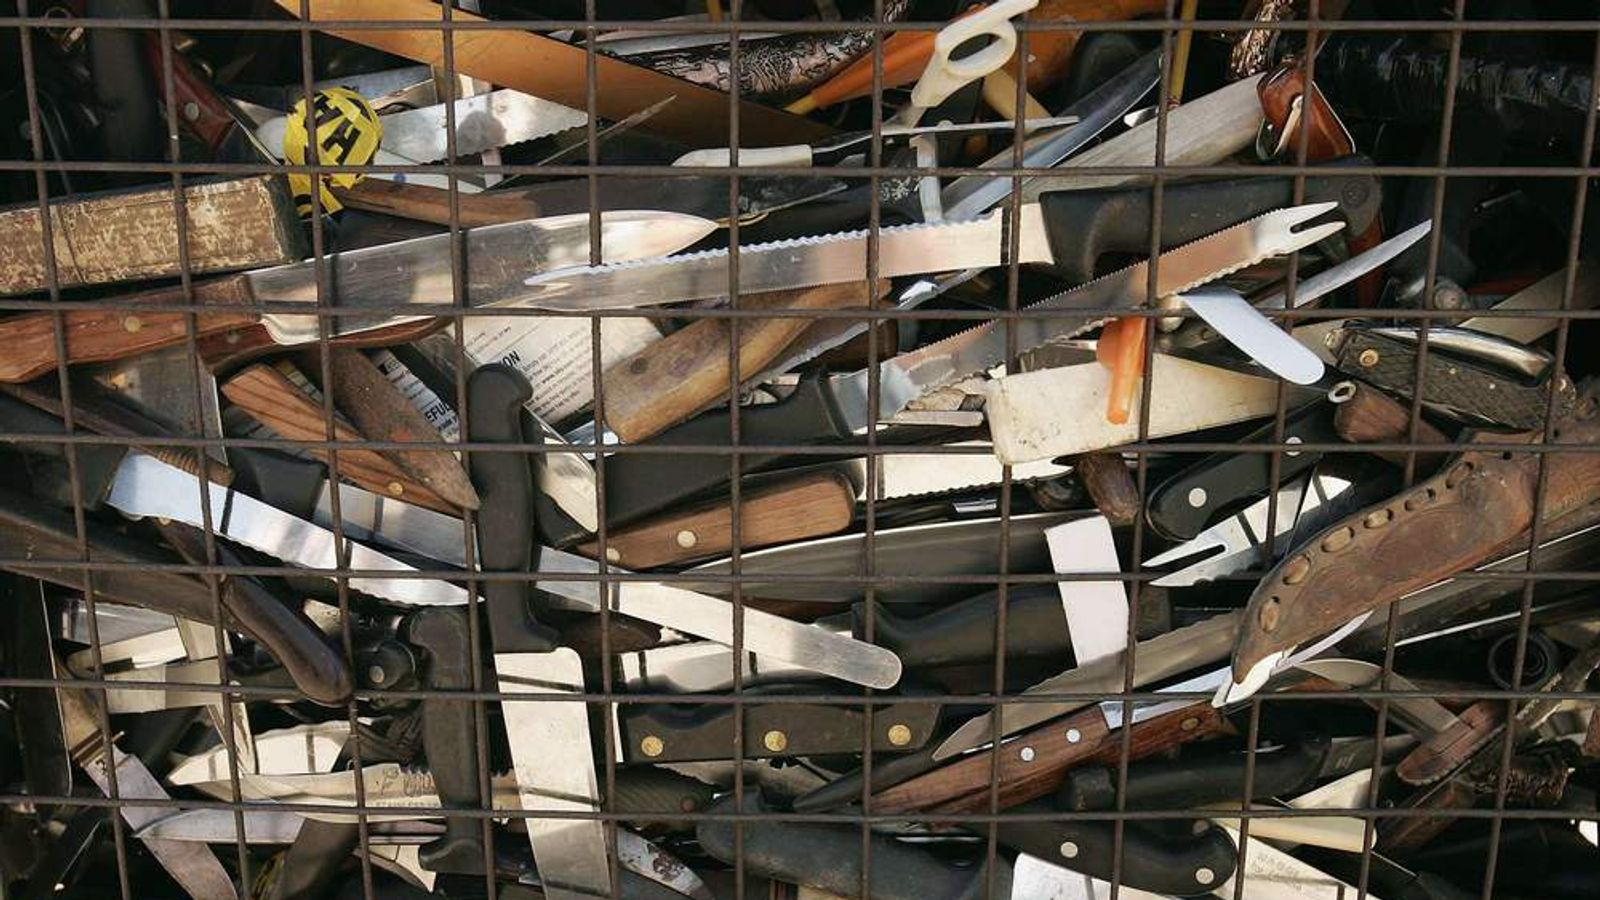 Knives and other weapons have been carried into schools by students.